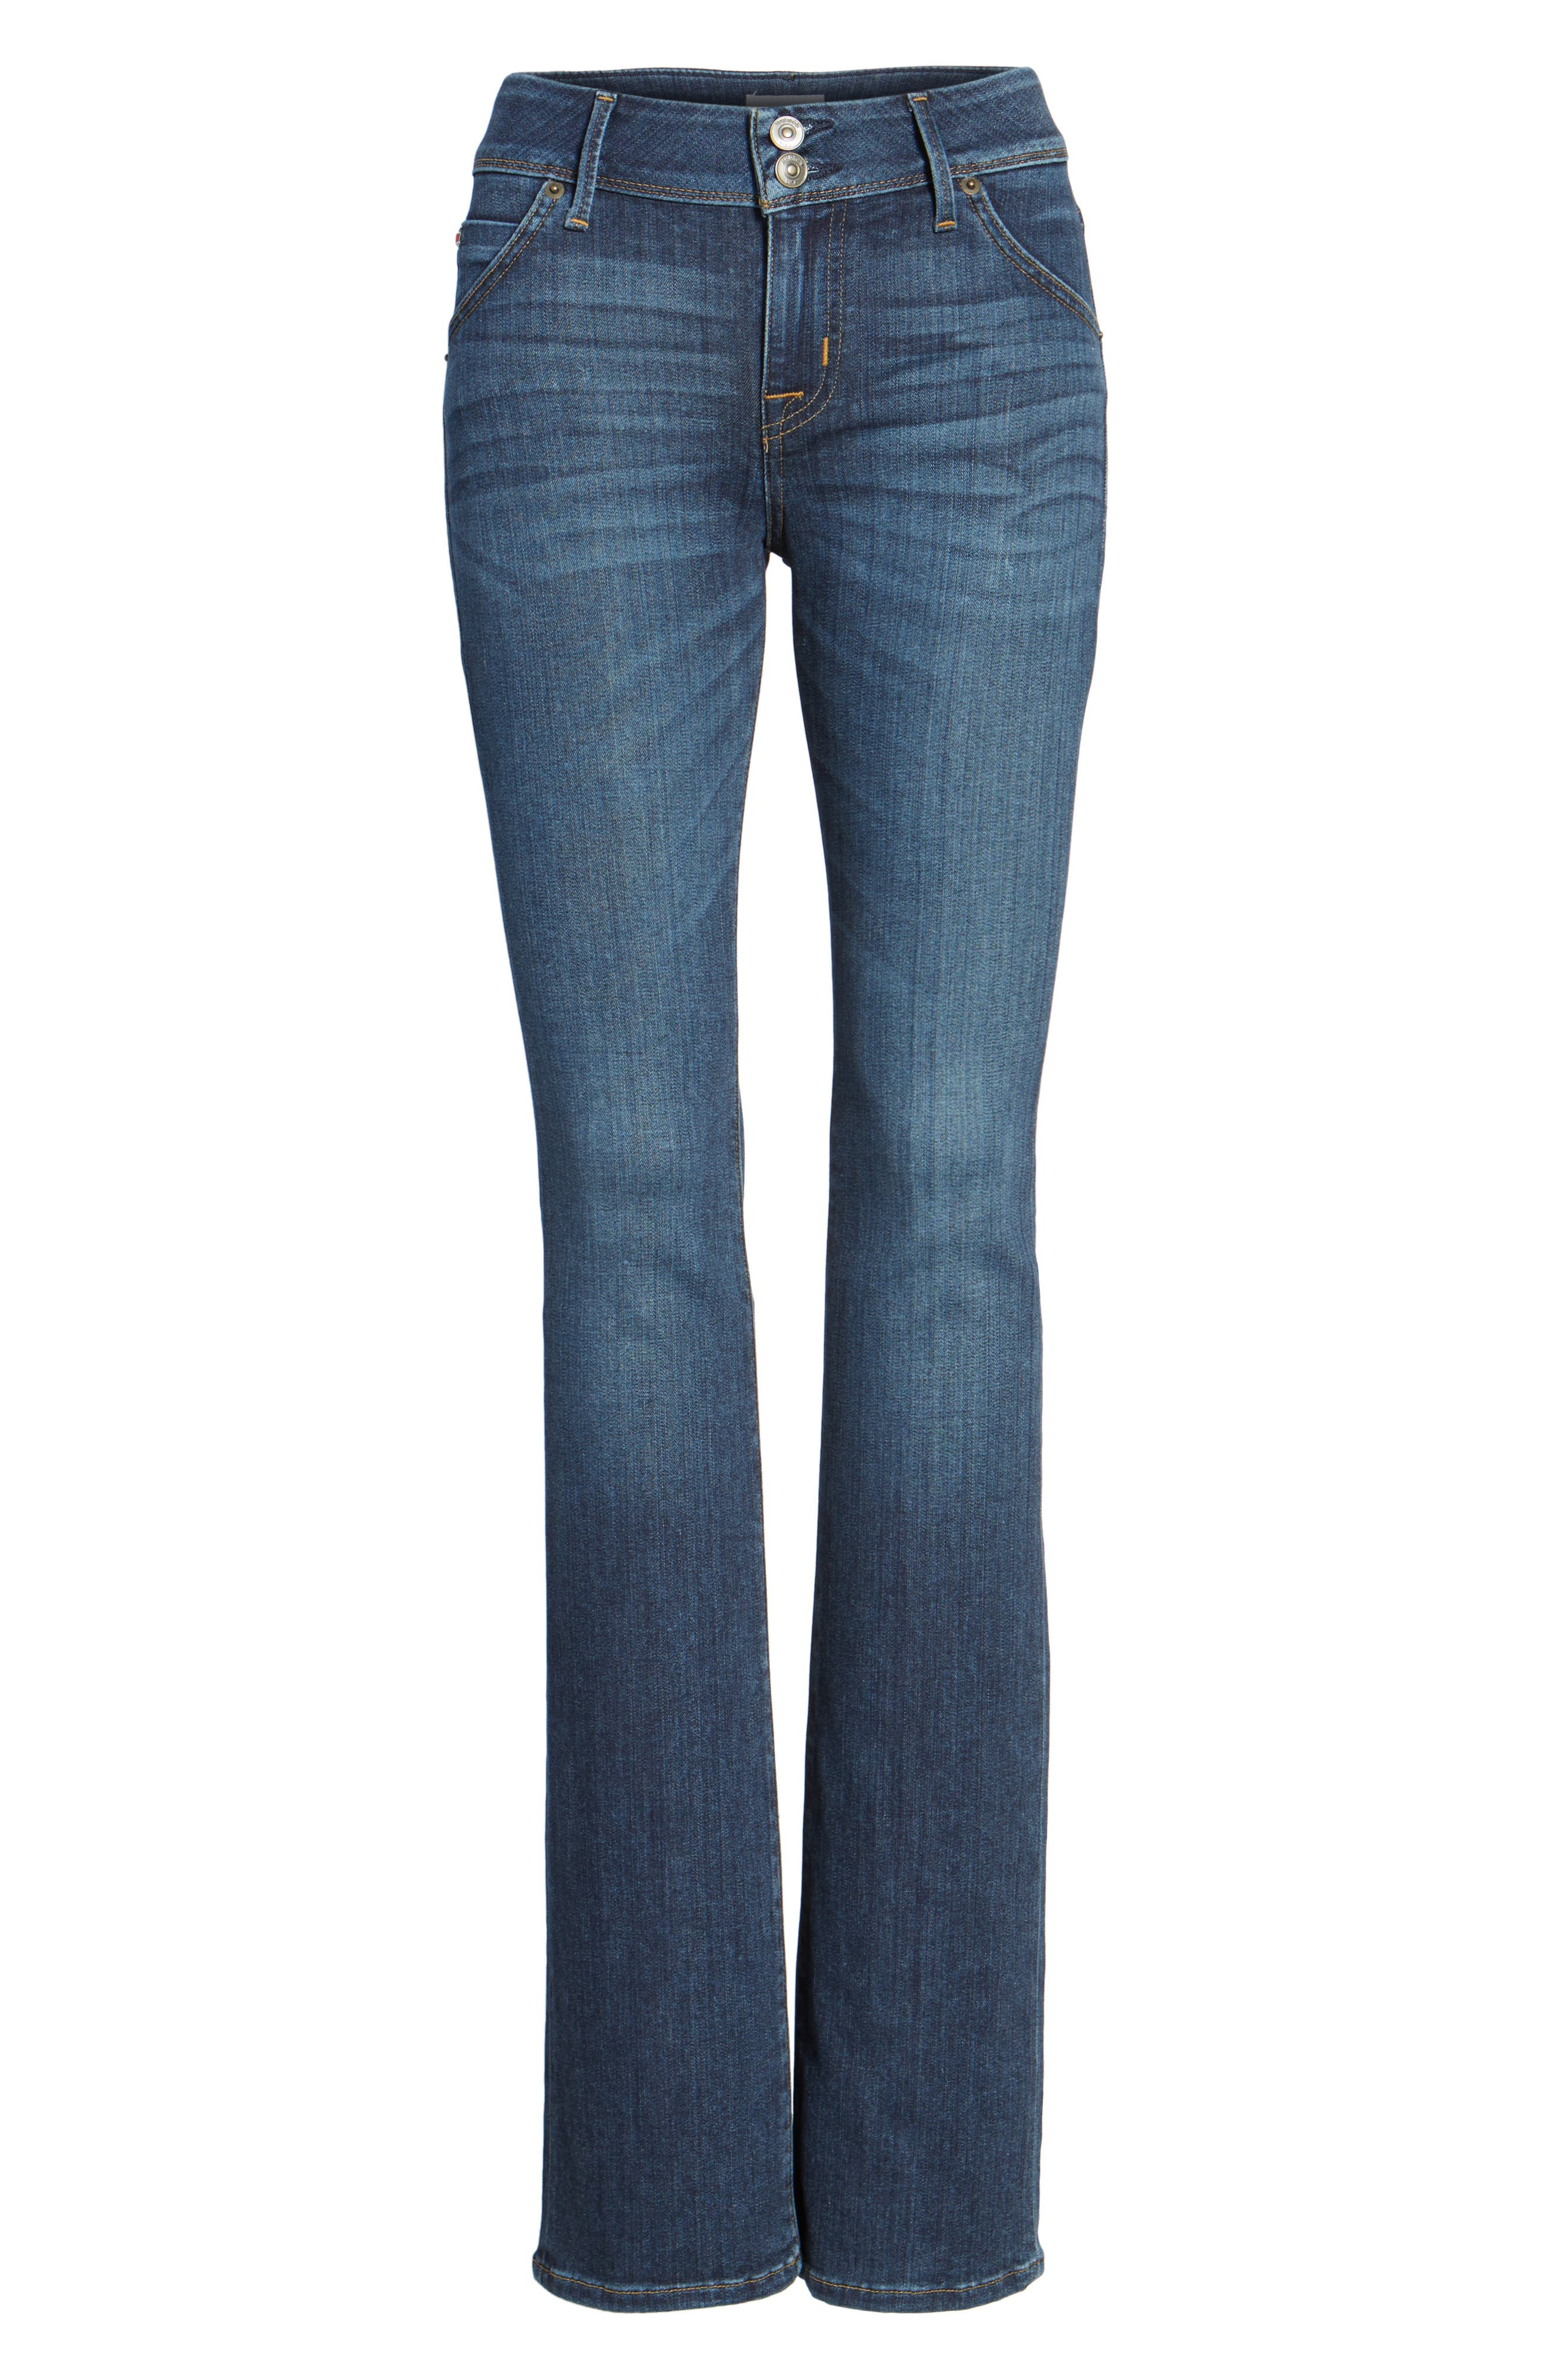 'Beth' Baby Bootcut Jeans,                             Alternate thumbnail 6, color,                             422